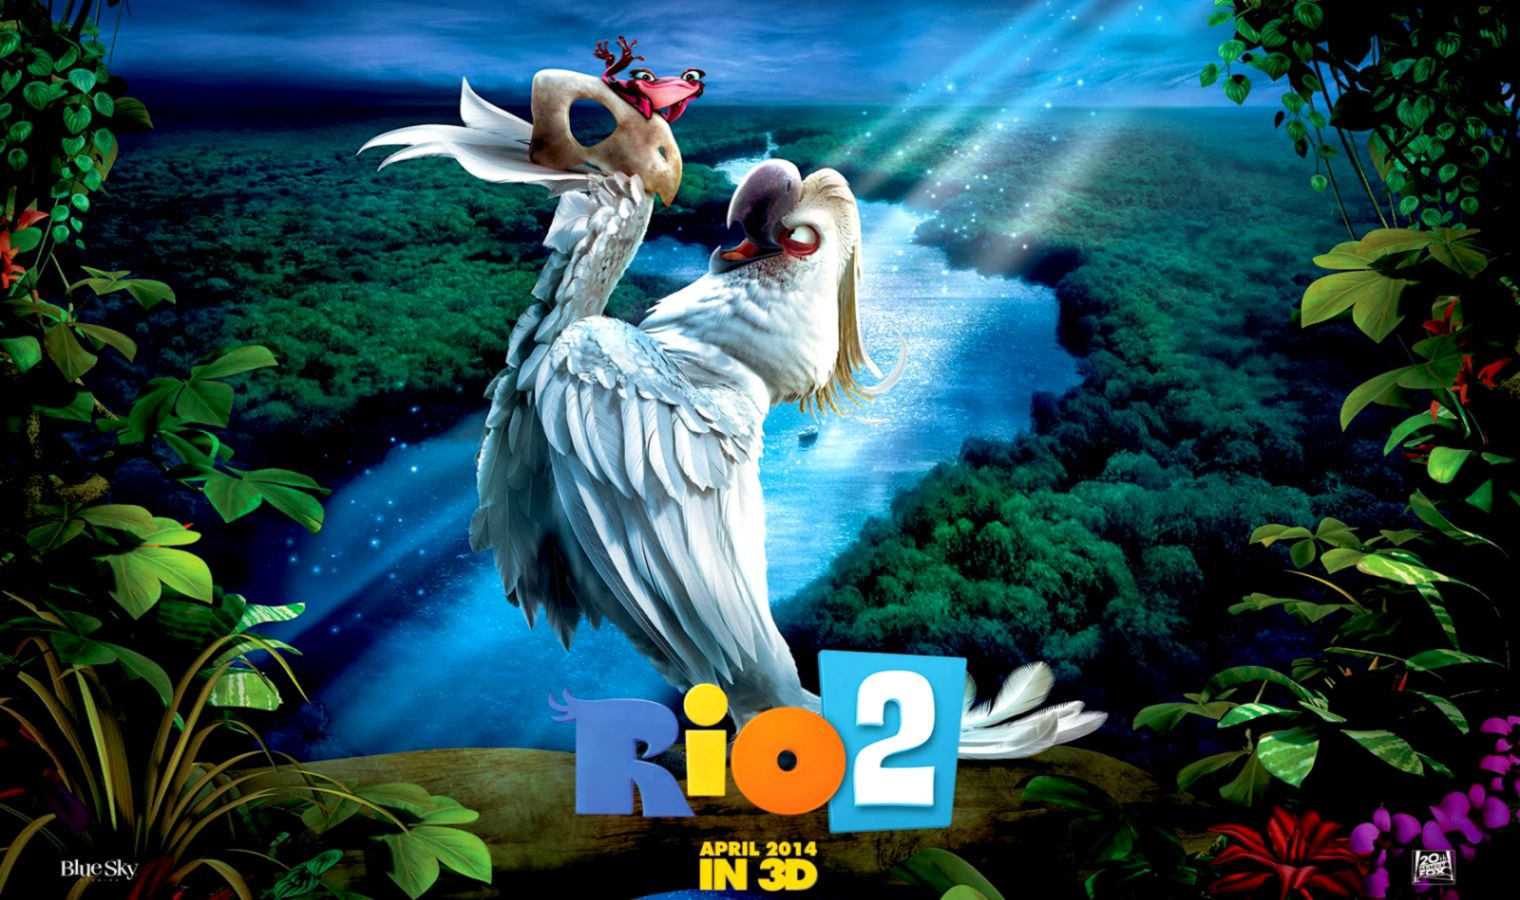 Rio Movie Wallpapers in jpg format for free